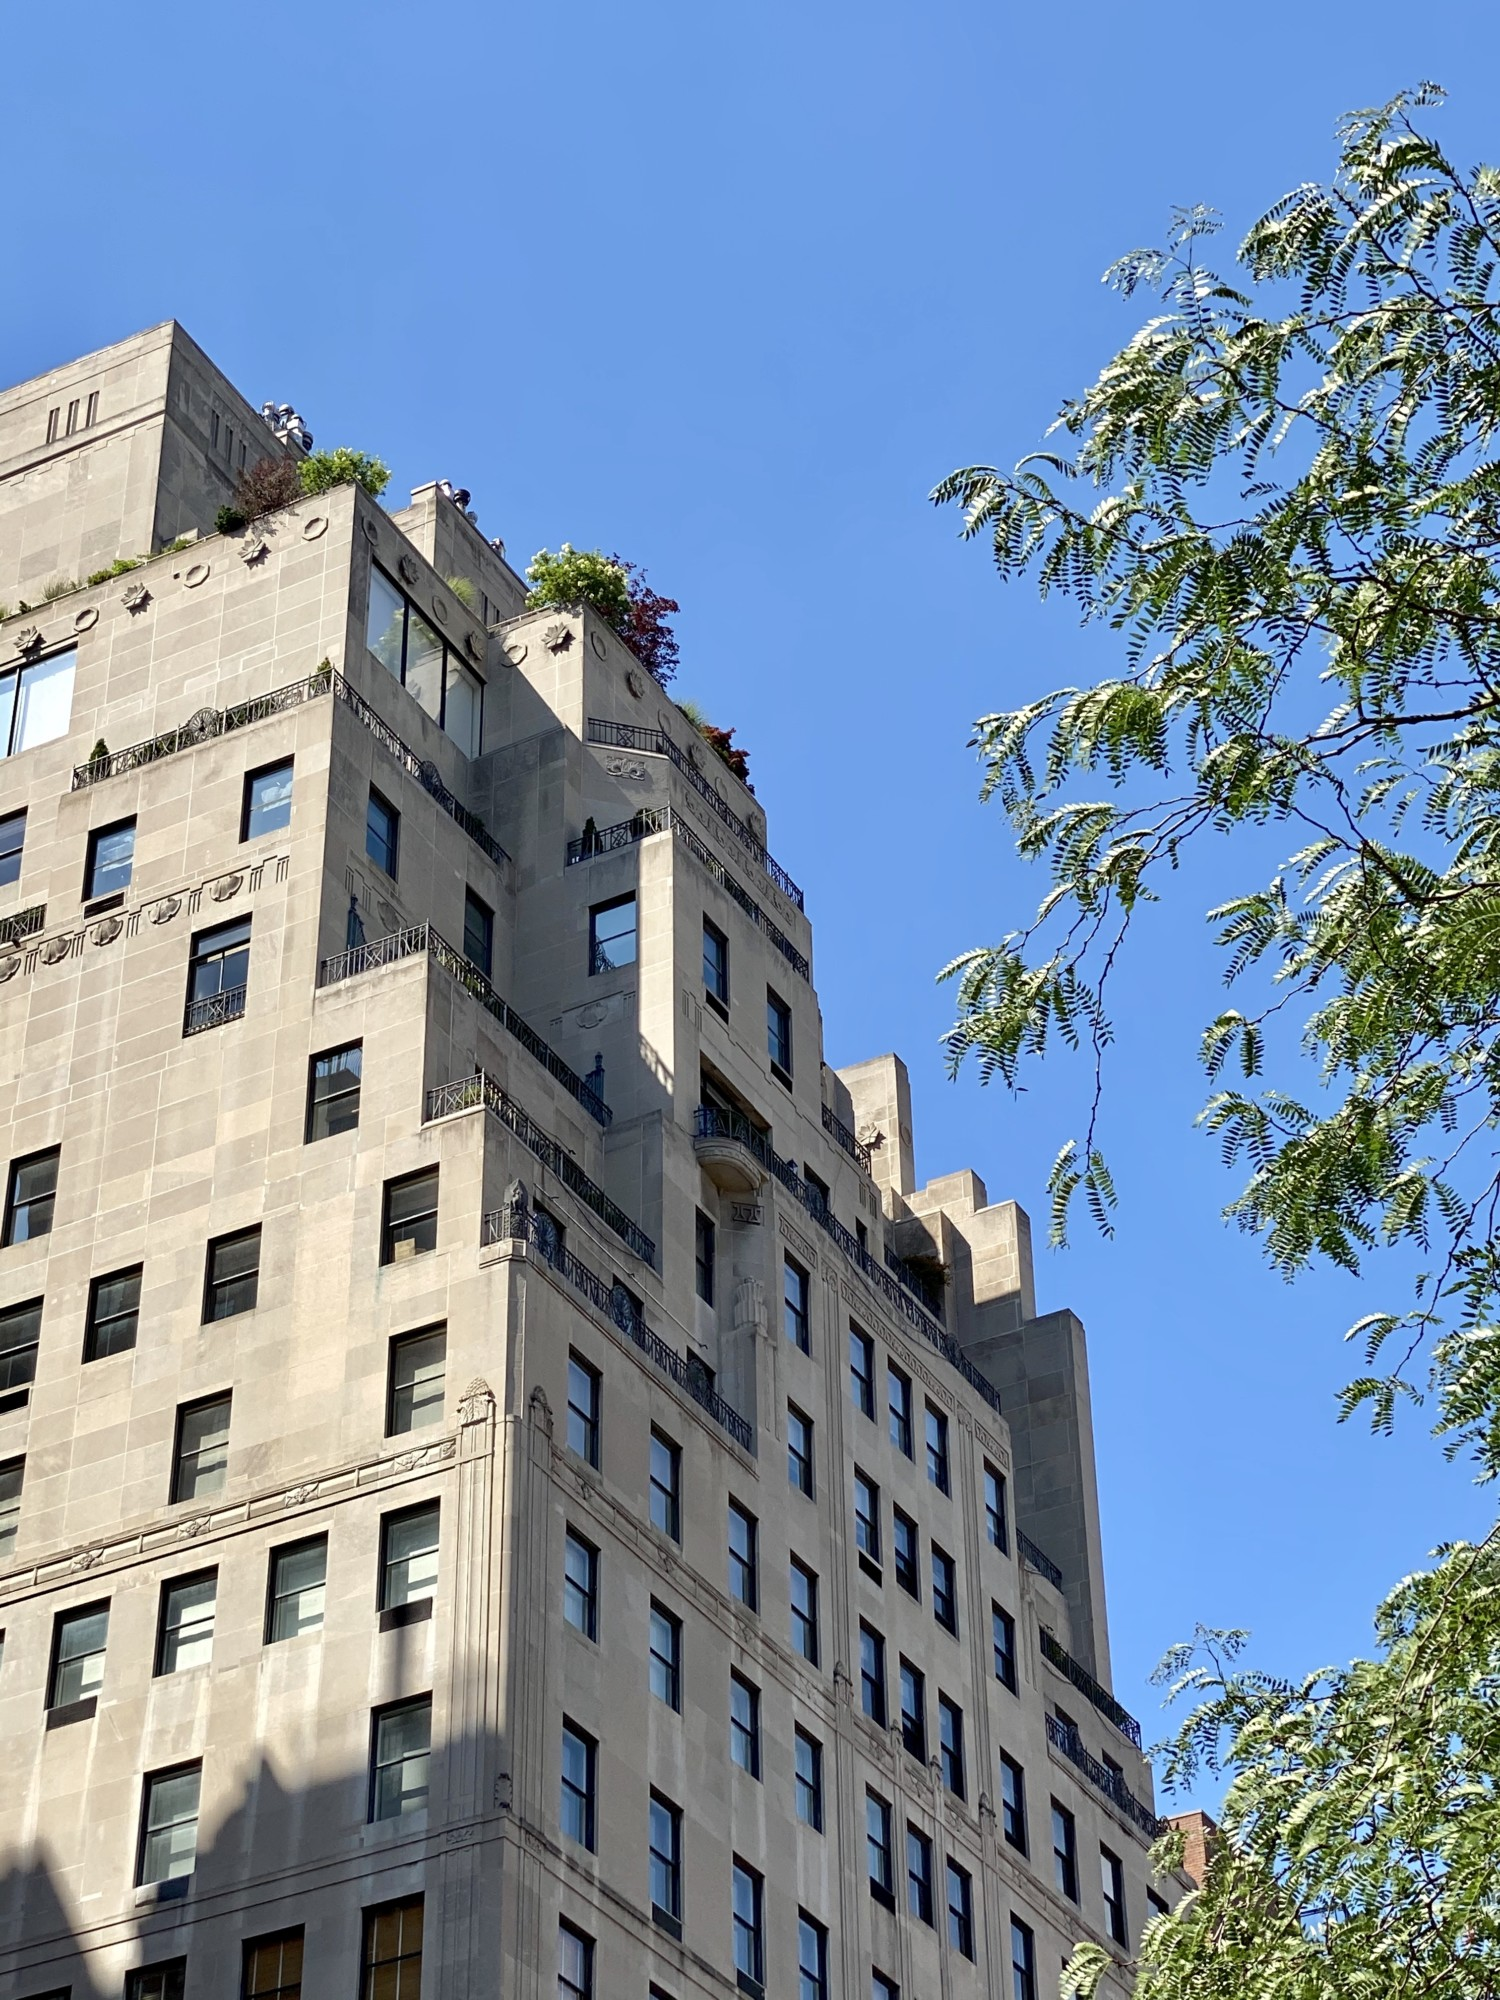 House Rules for a Condo or Co-op in NYC